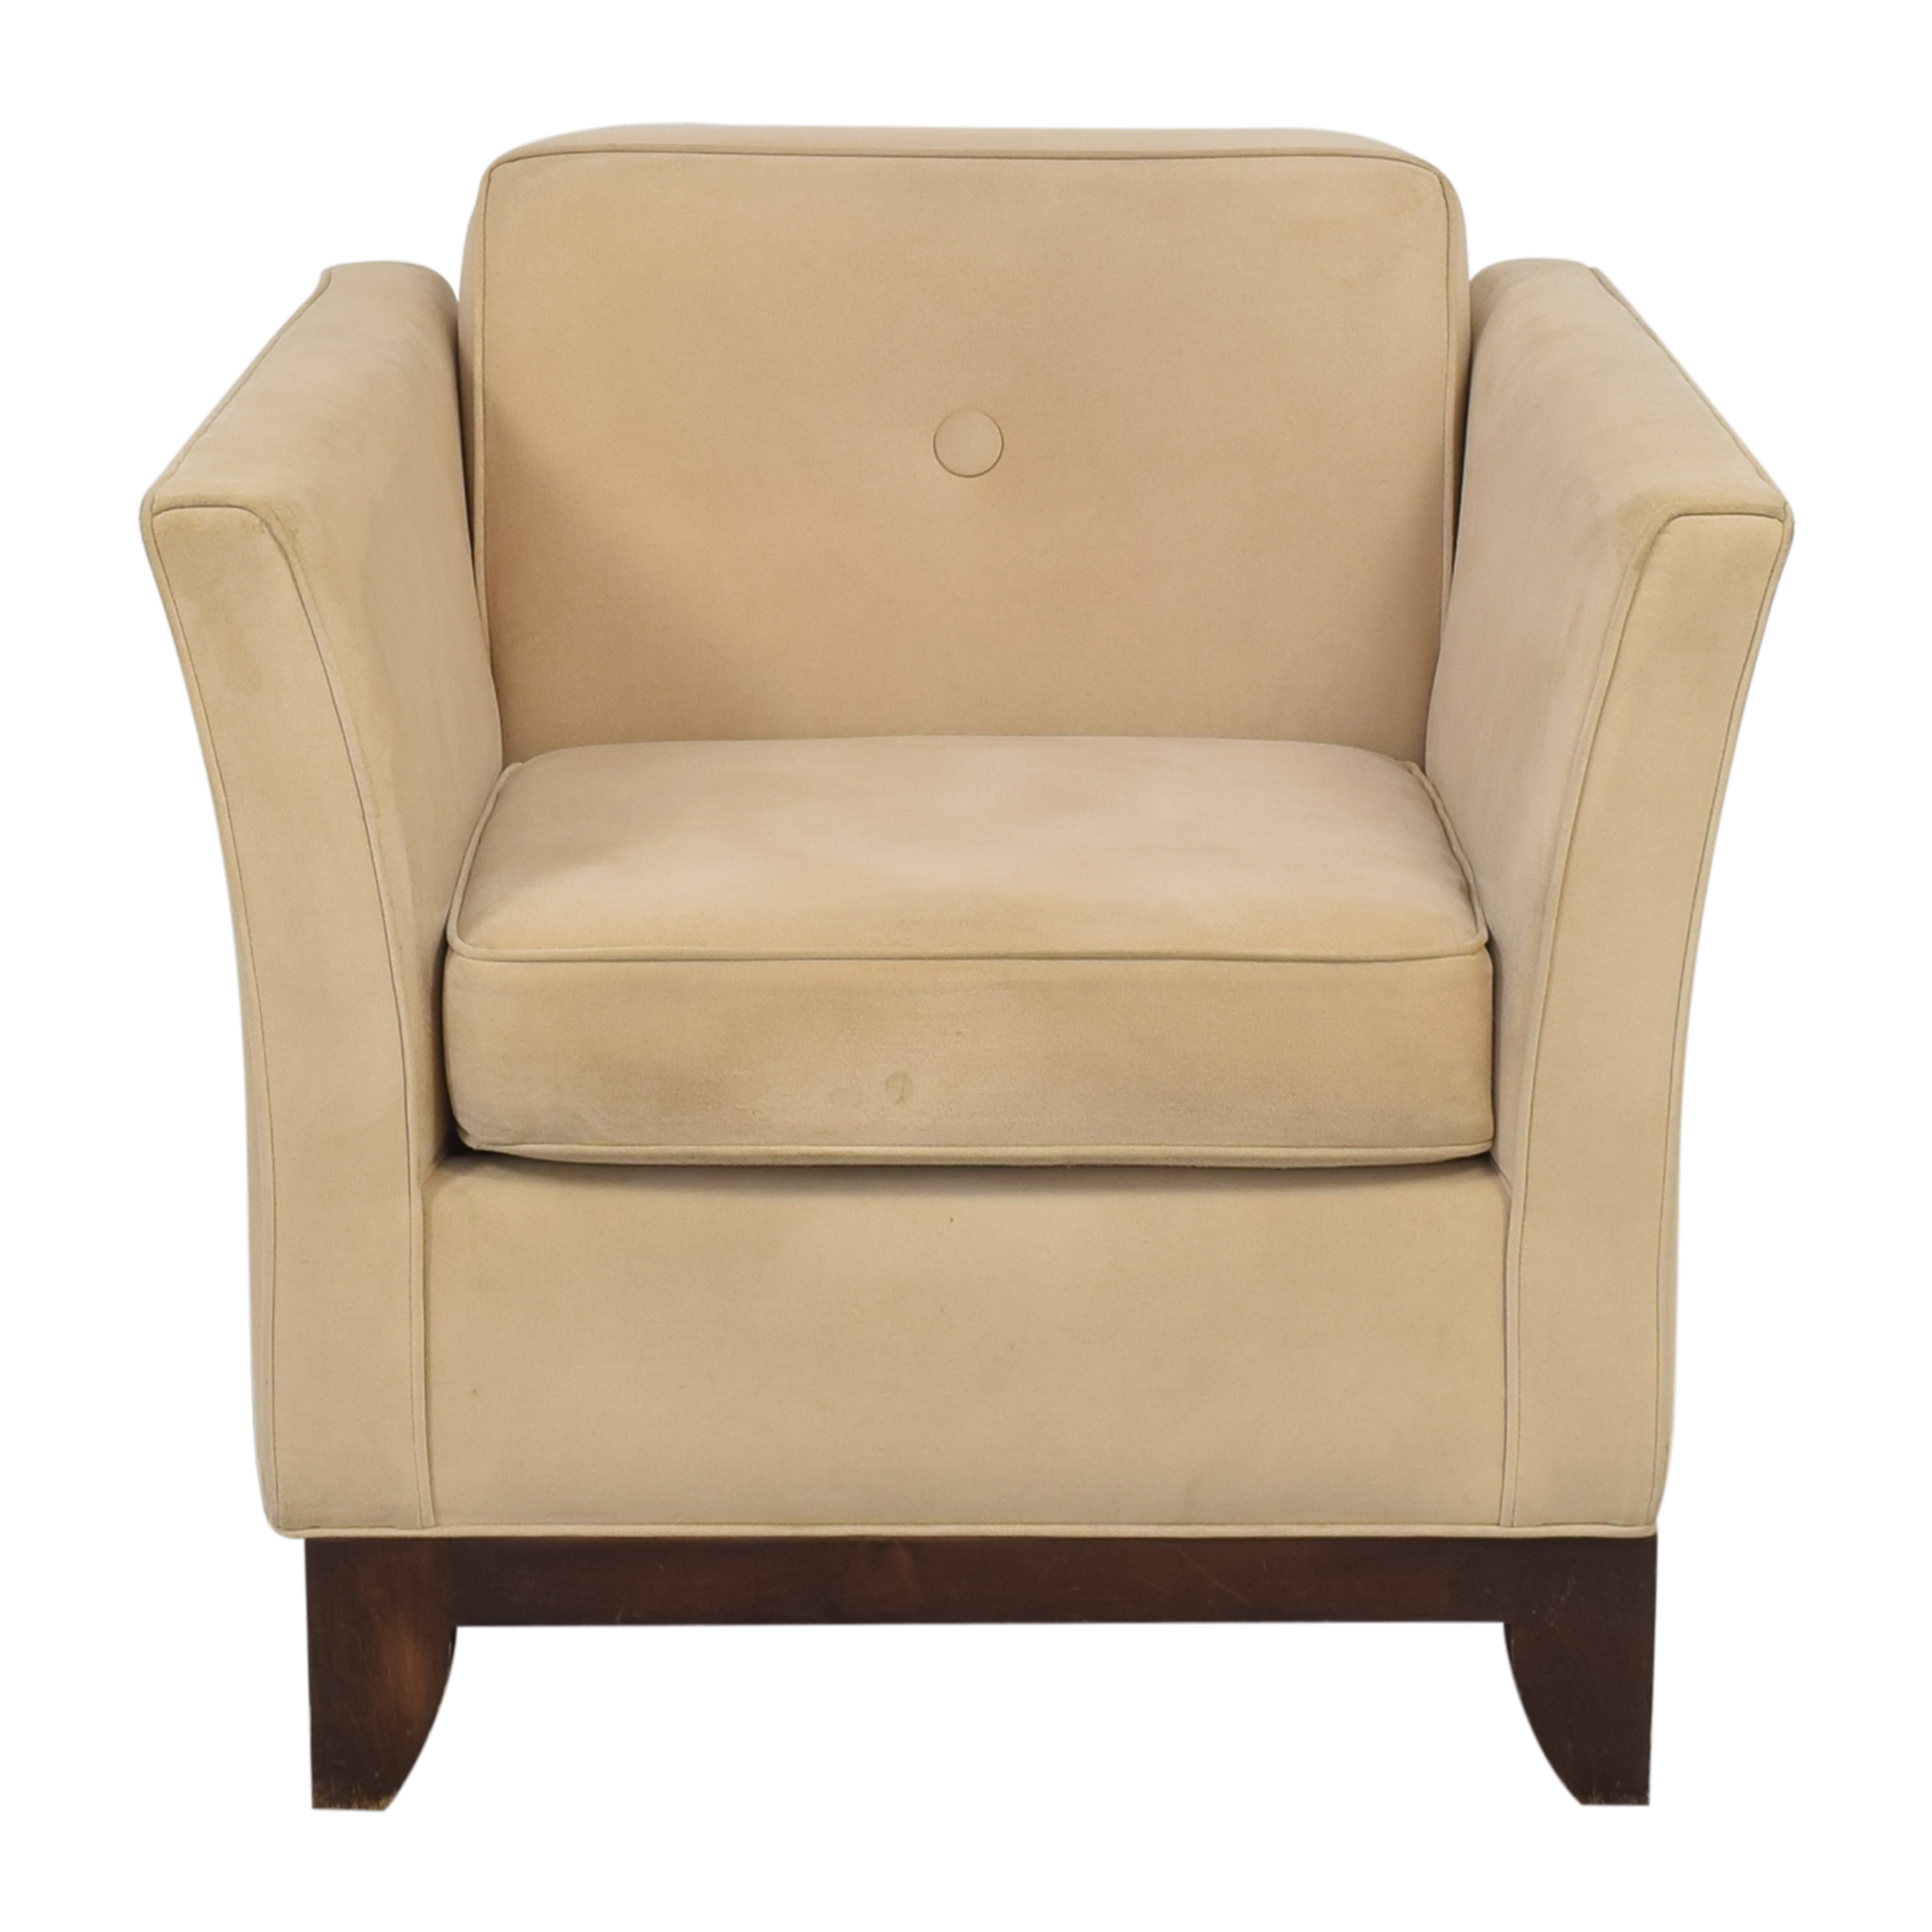 Carlyle Carlyle Upholstered Club Chair nj